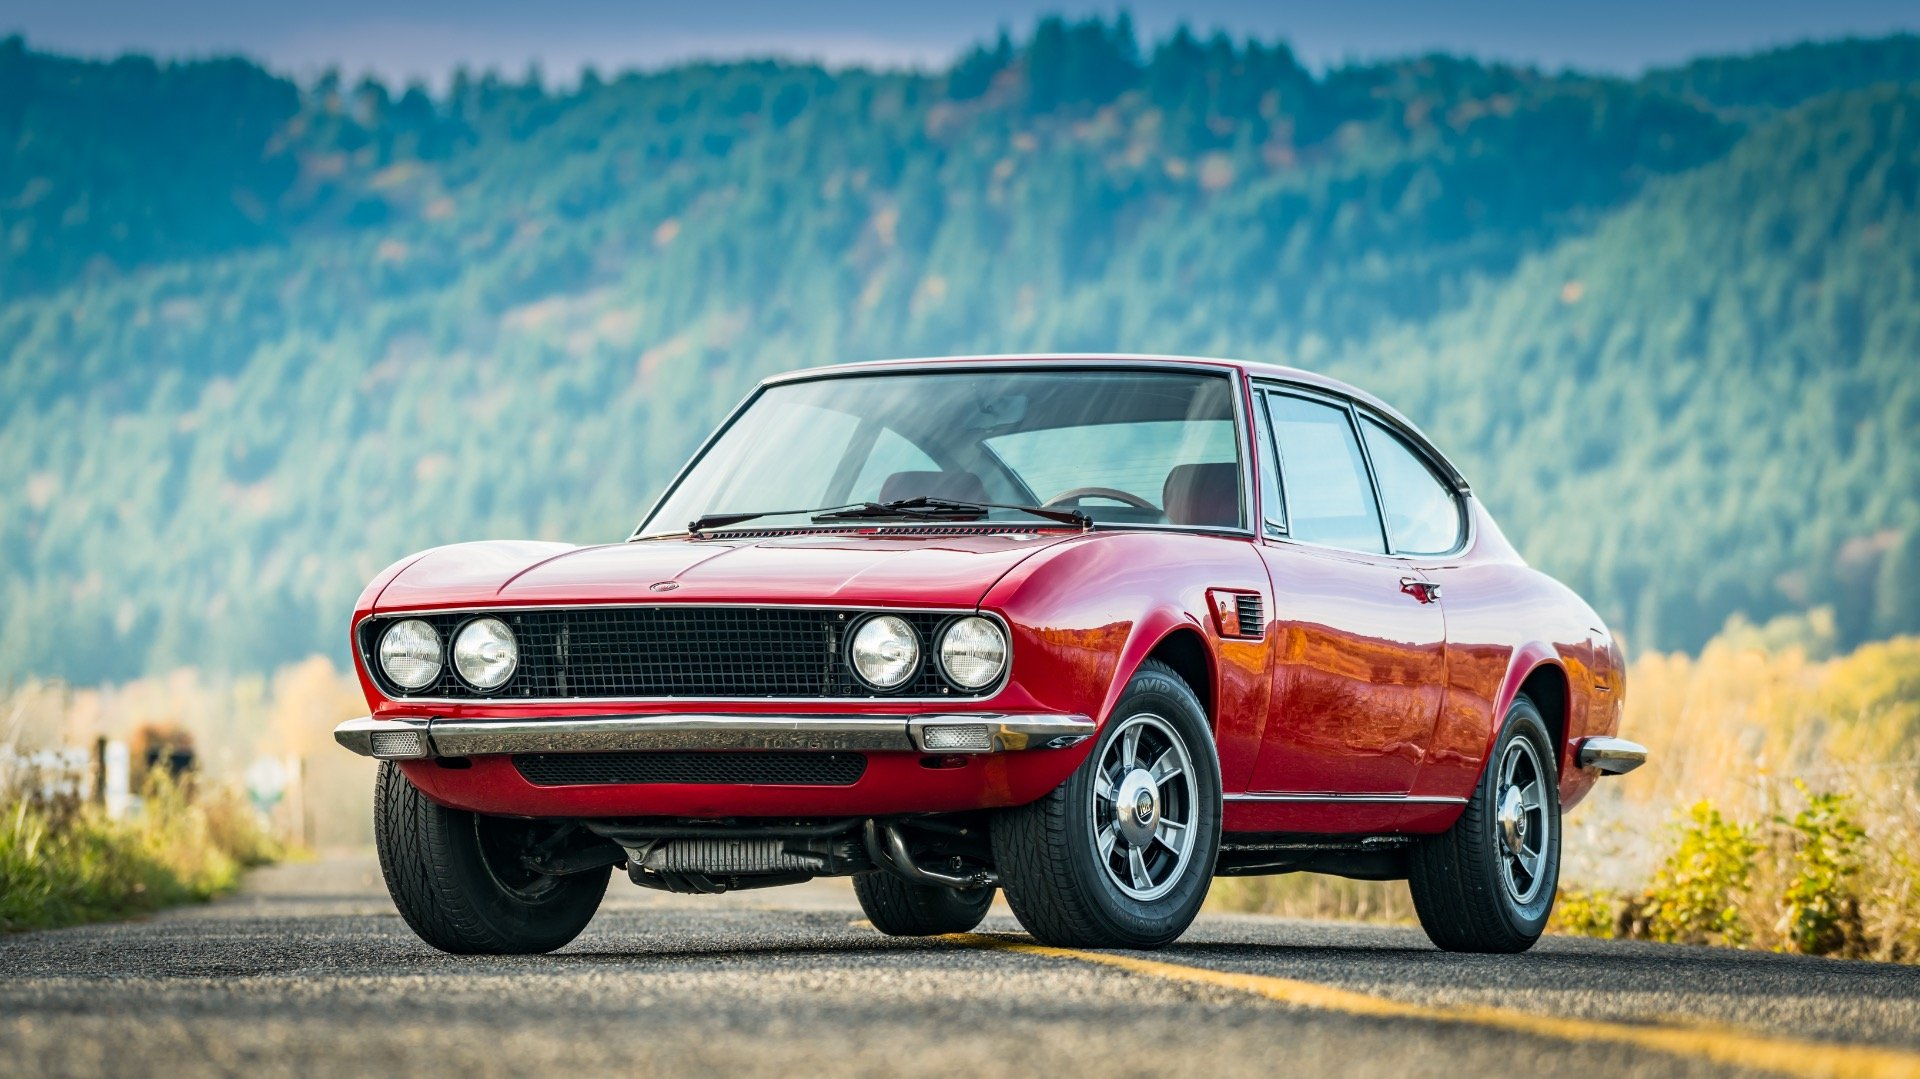 1970 Fiat Dino 2400  = Red(~)Black driver 31k miles  $68k For Sale (picture 1 of 6)